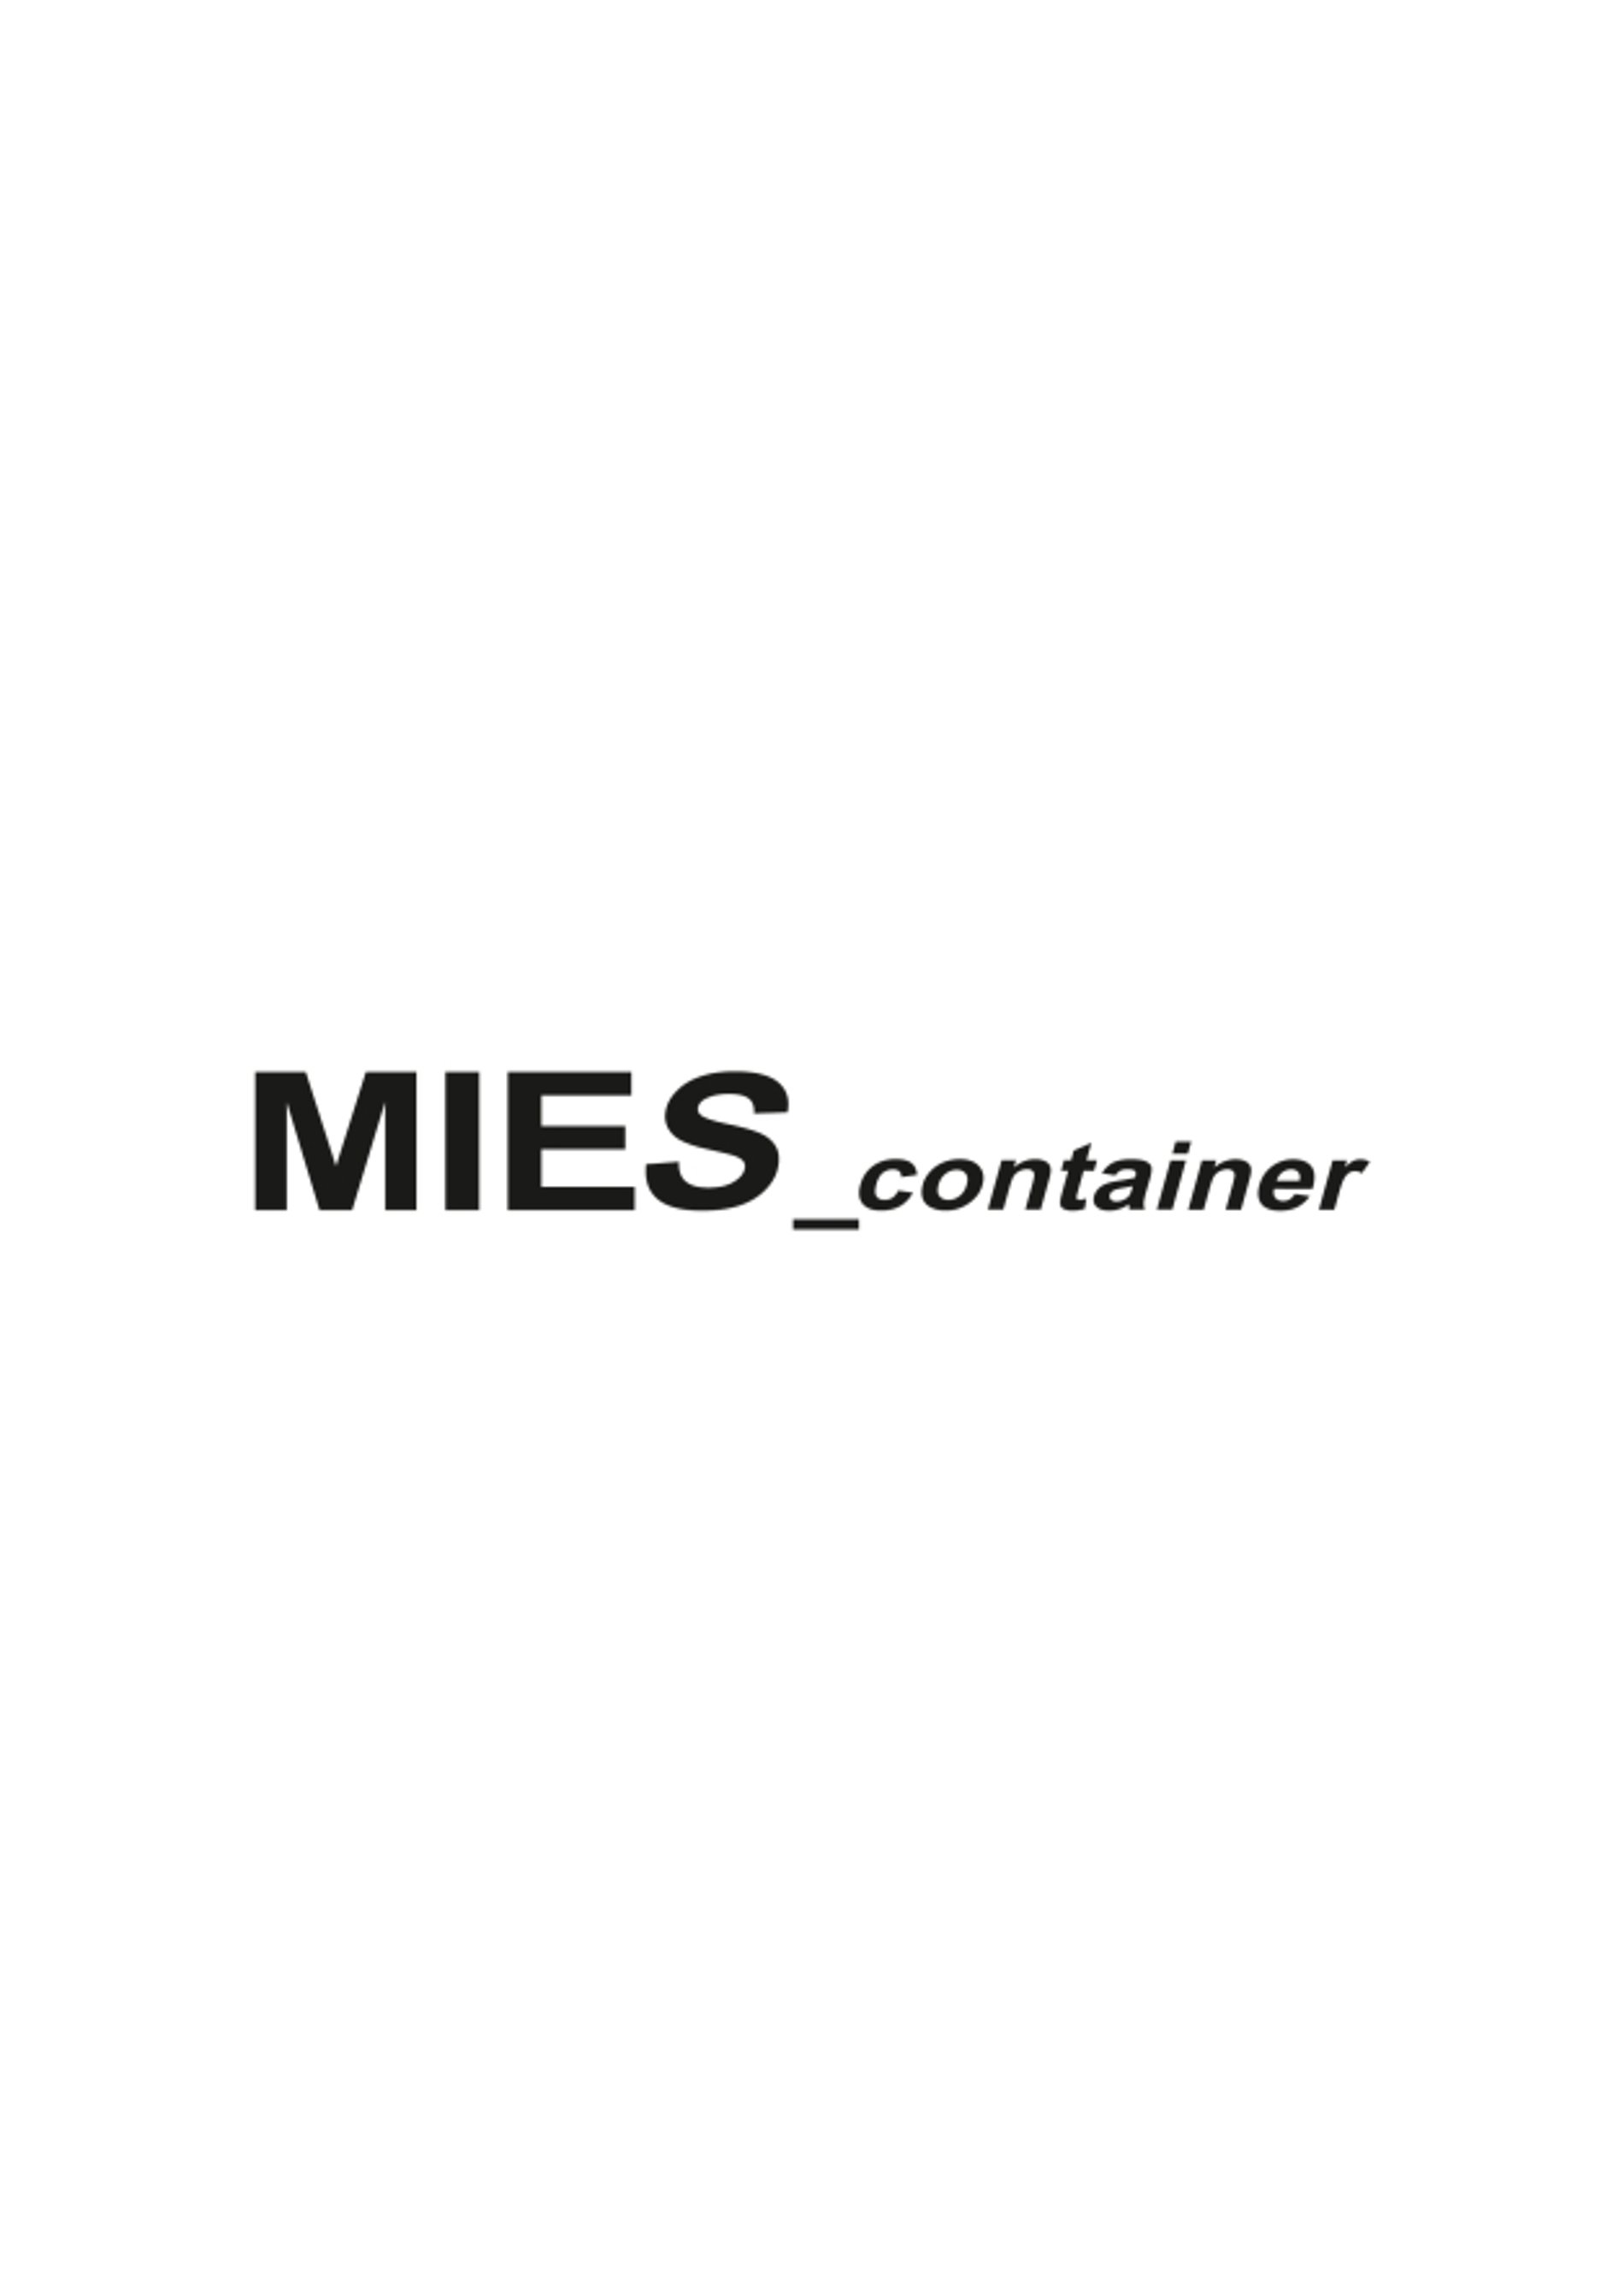 MIES_container | Red Dot Design Award